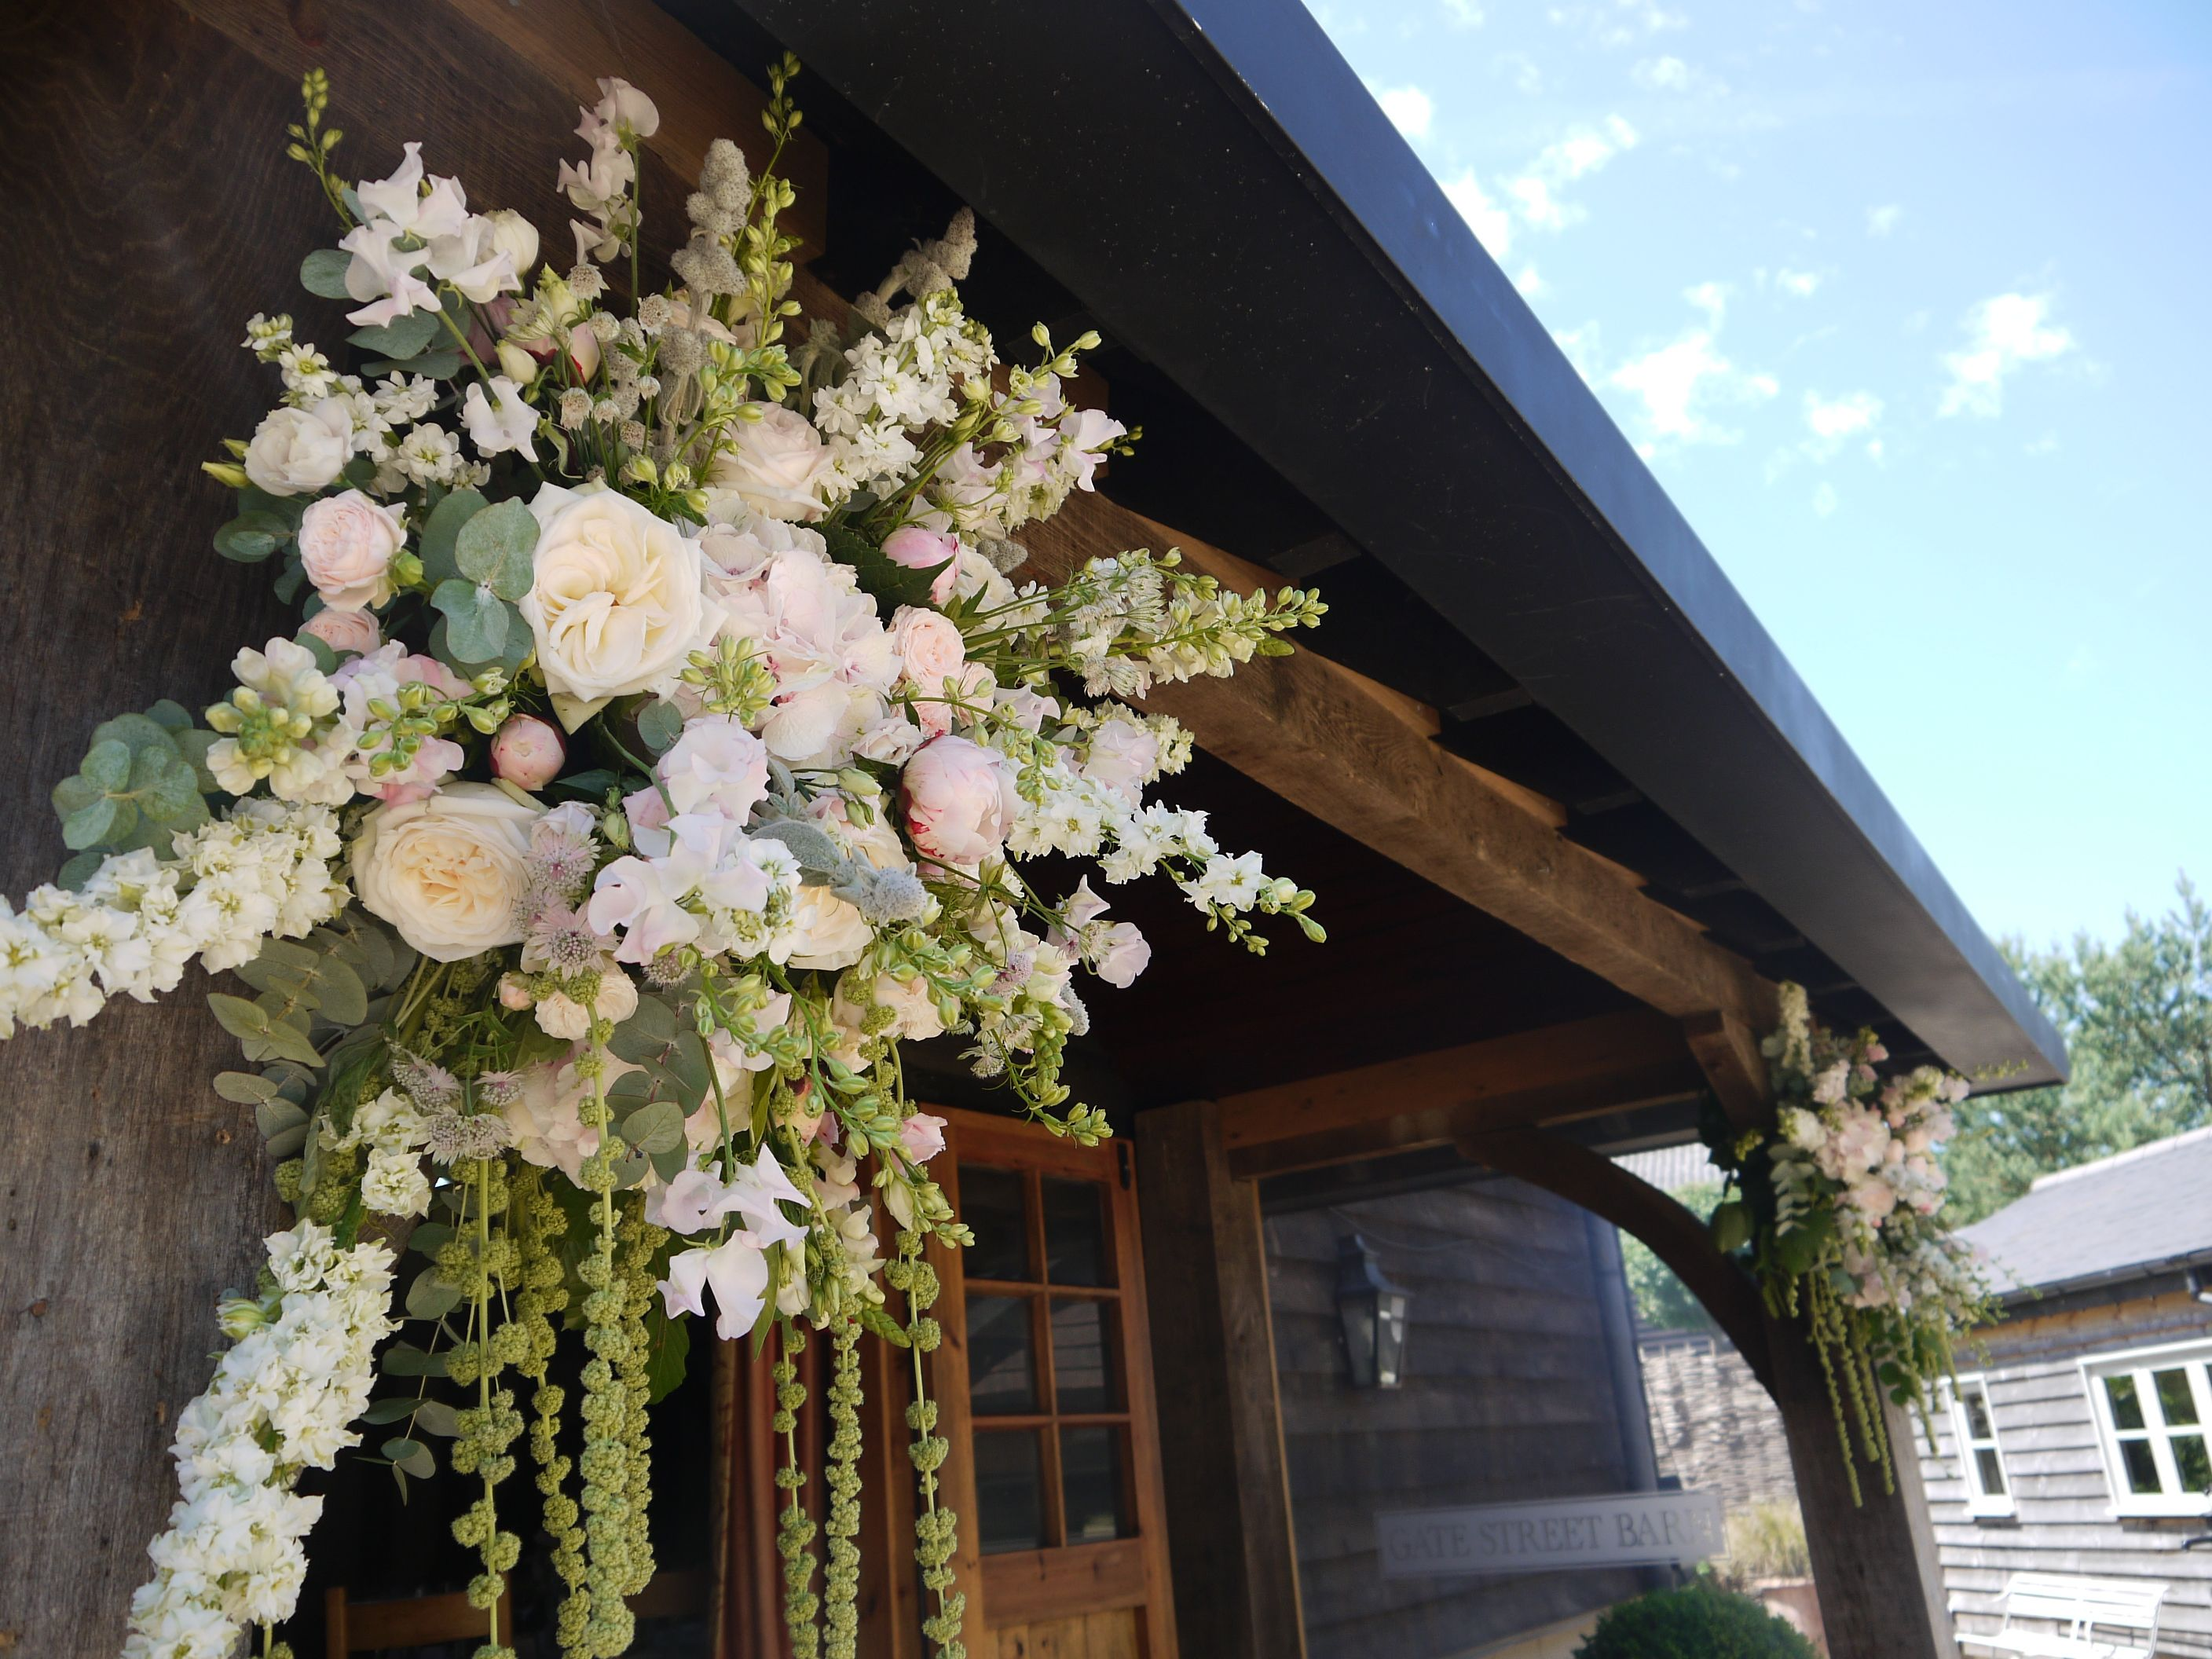 A lovely bunch of hanging flowers @GateStreetBarn